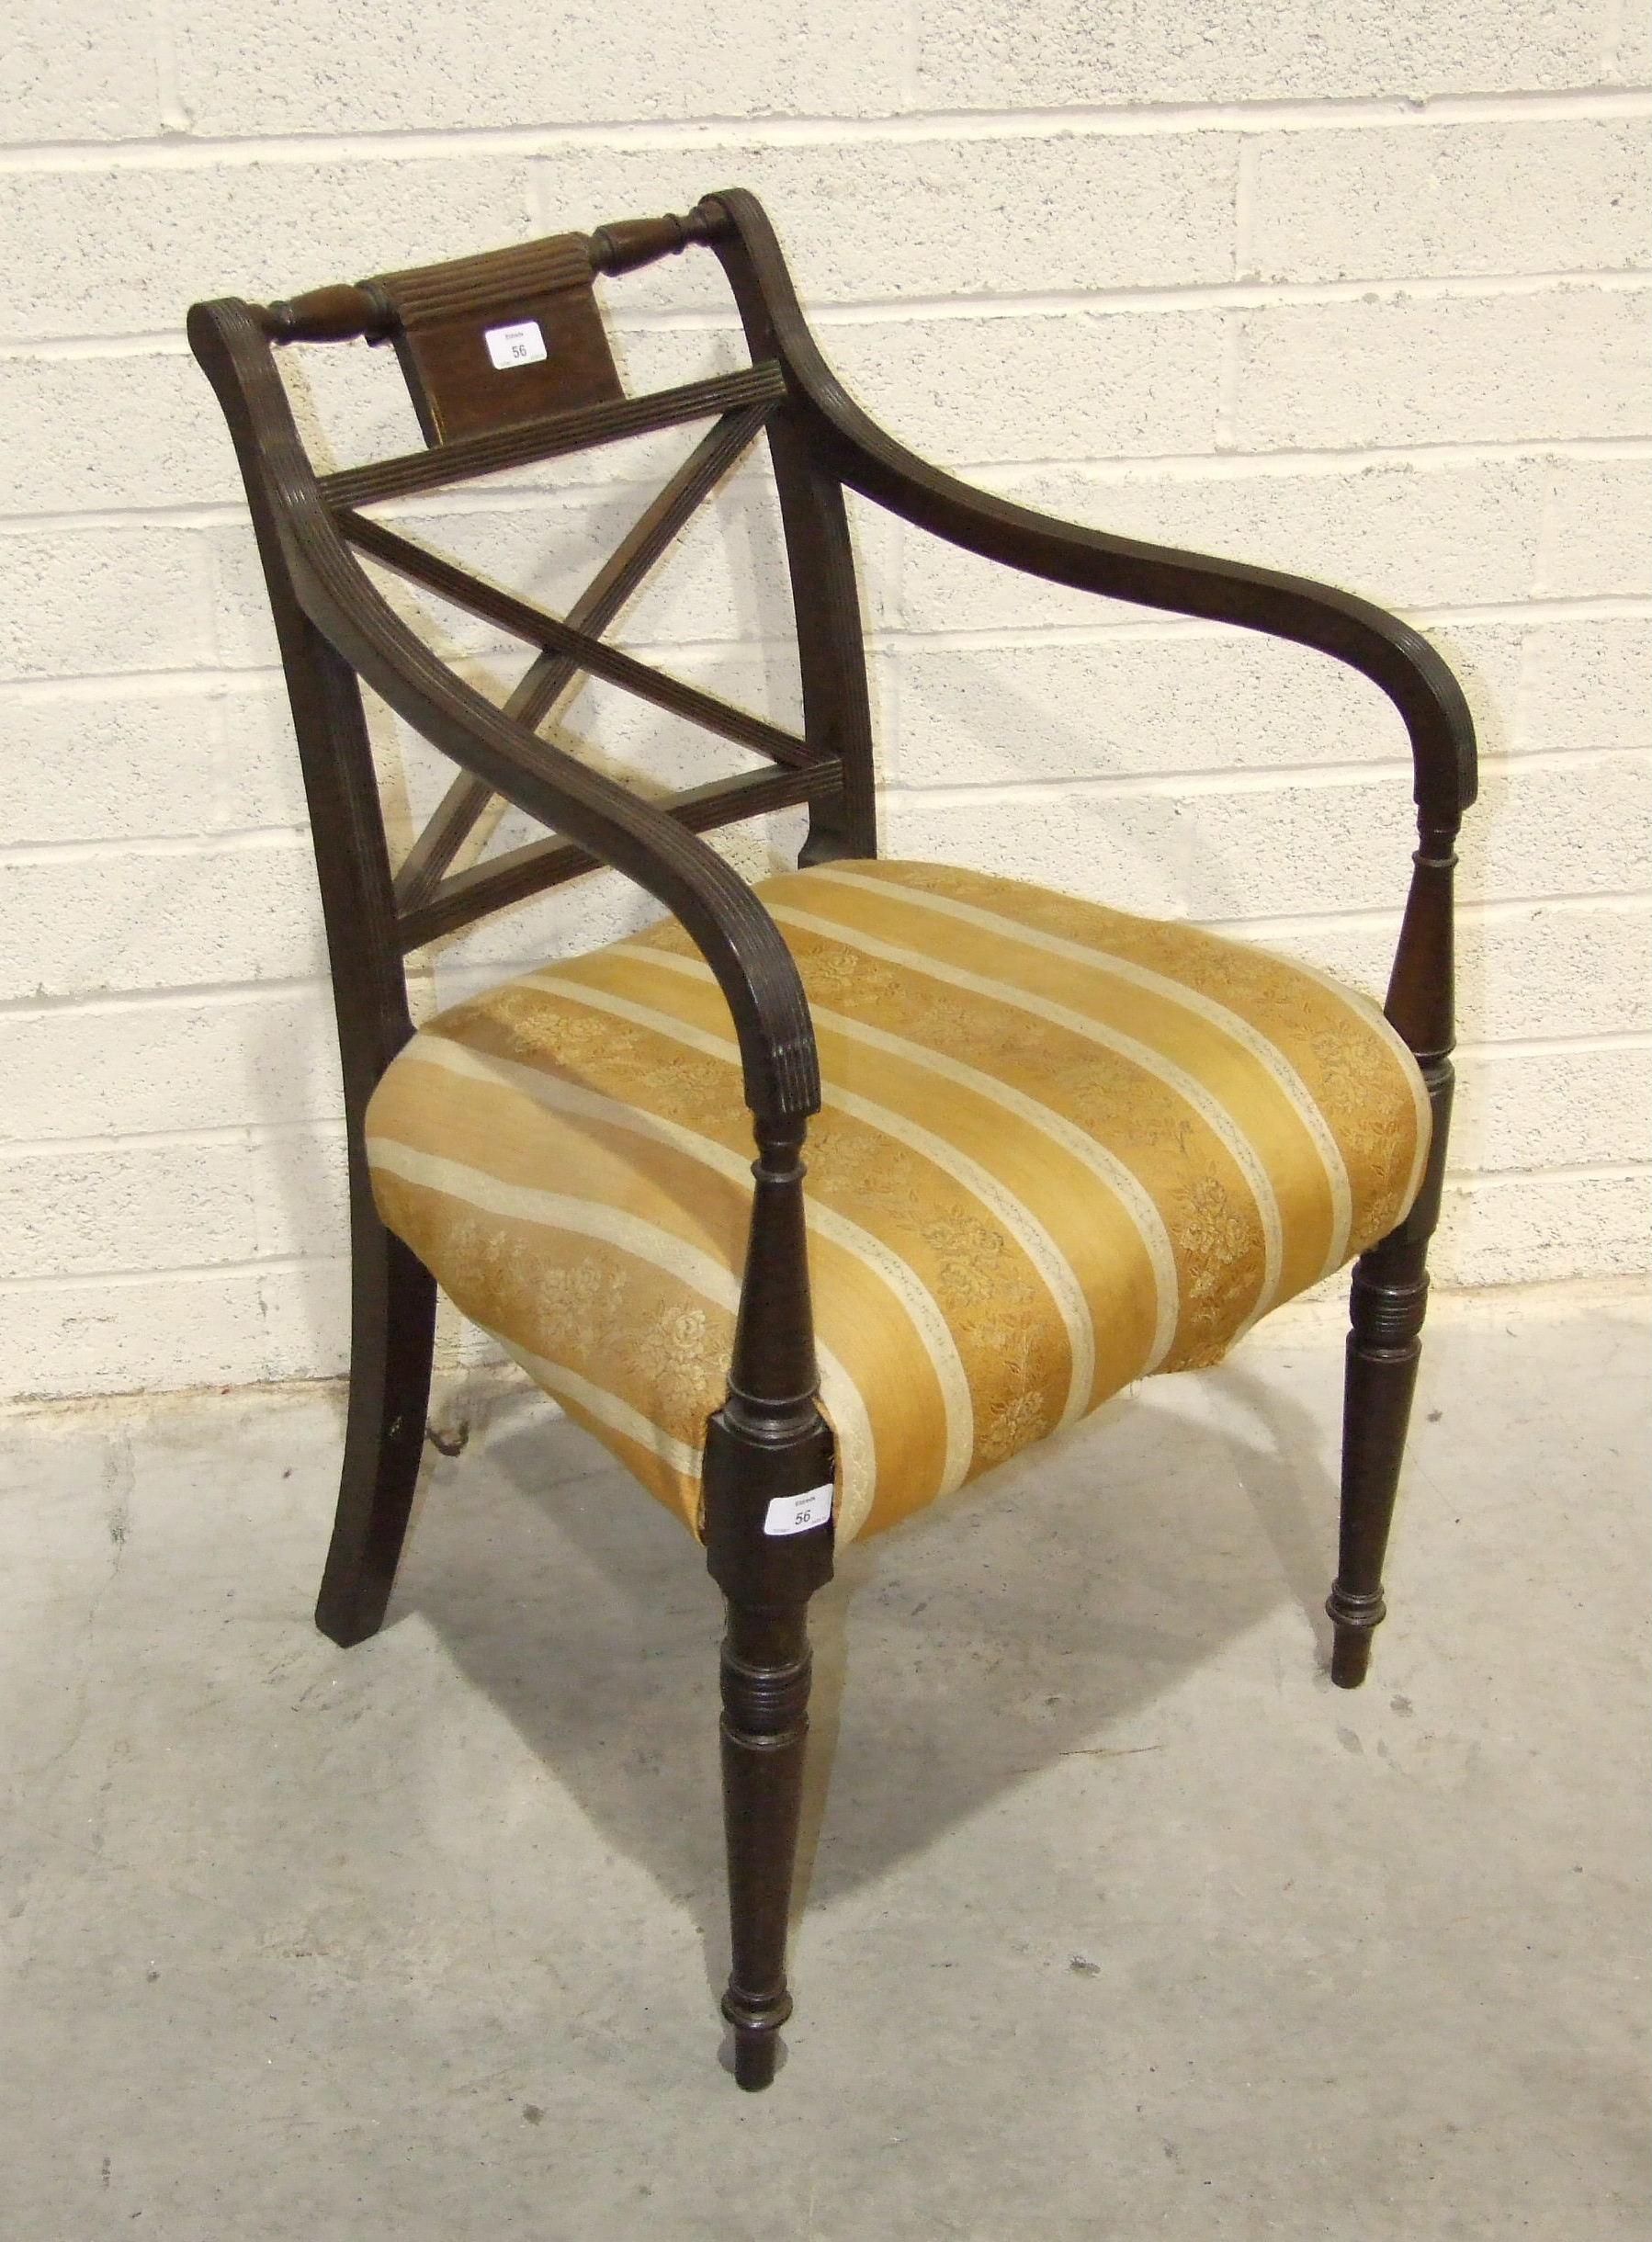 Lot 56 - A late-Georgian mahogany carver chair with reeded frame and upholstered seat, on turned legs.